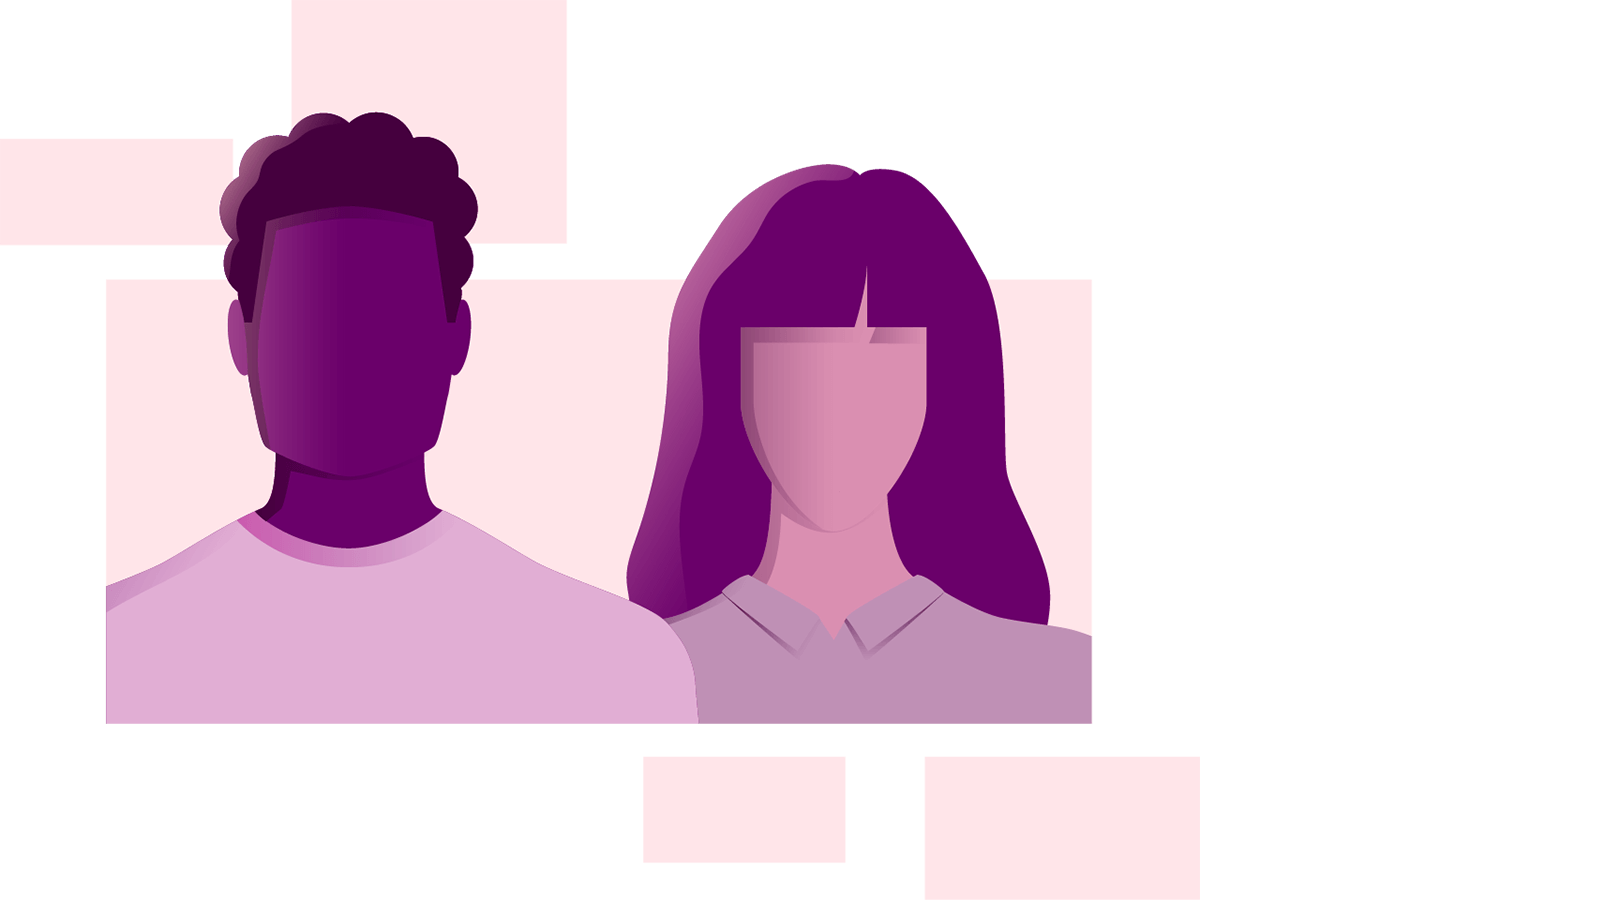 Illustration of a male and female silhouette.